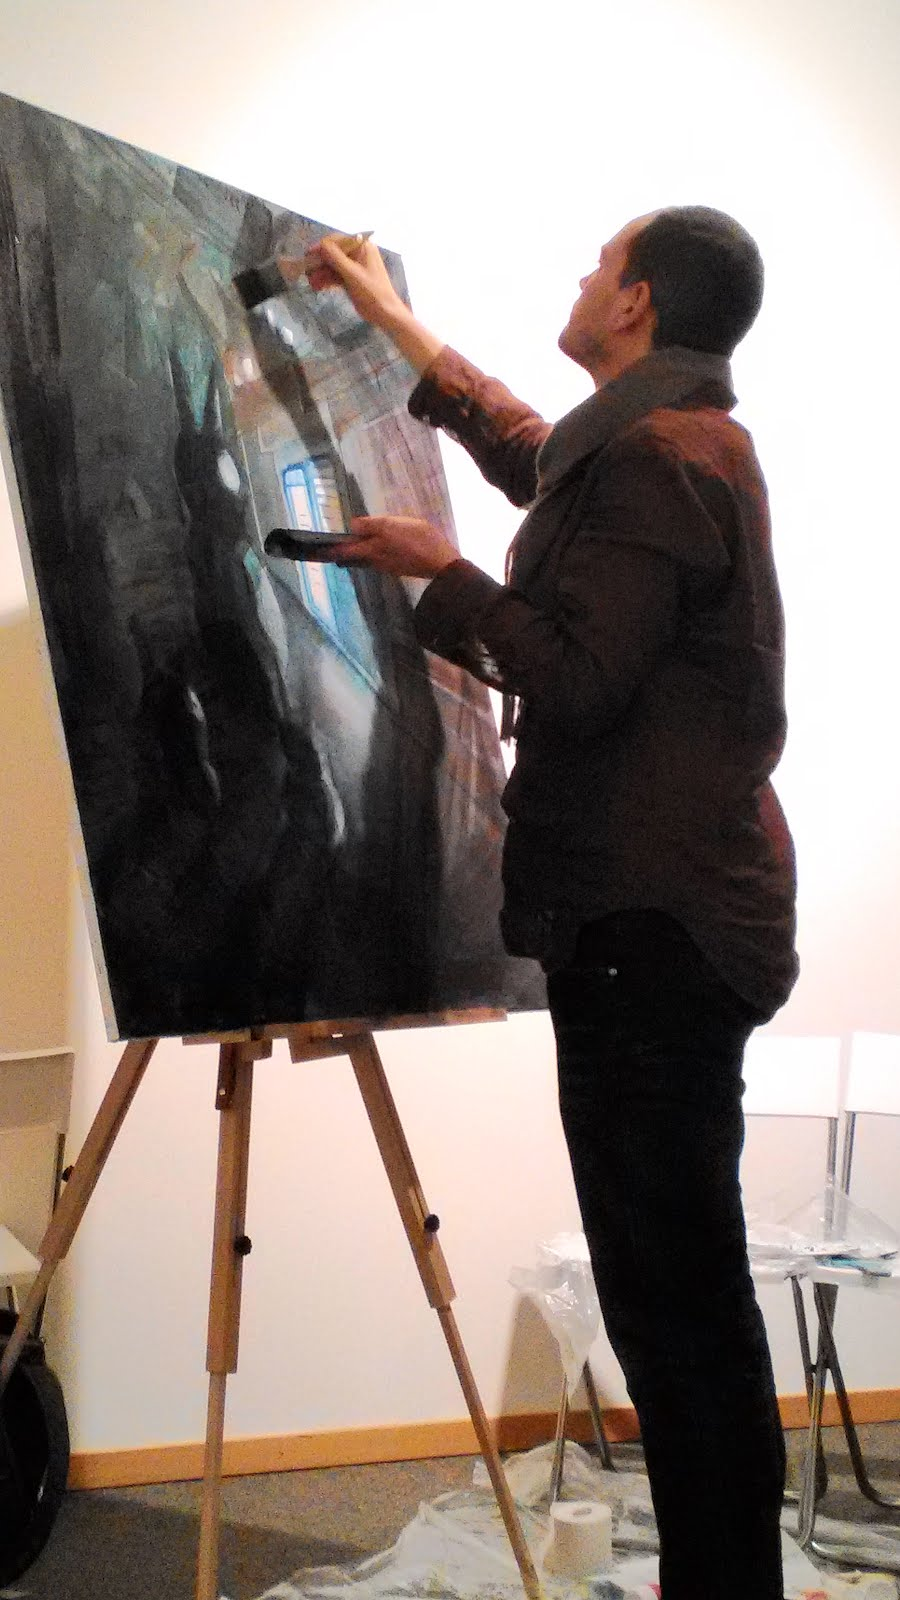 HI guys, I did a live painting in Geneva yesterday night